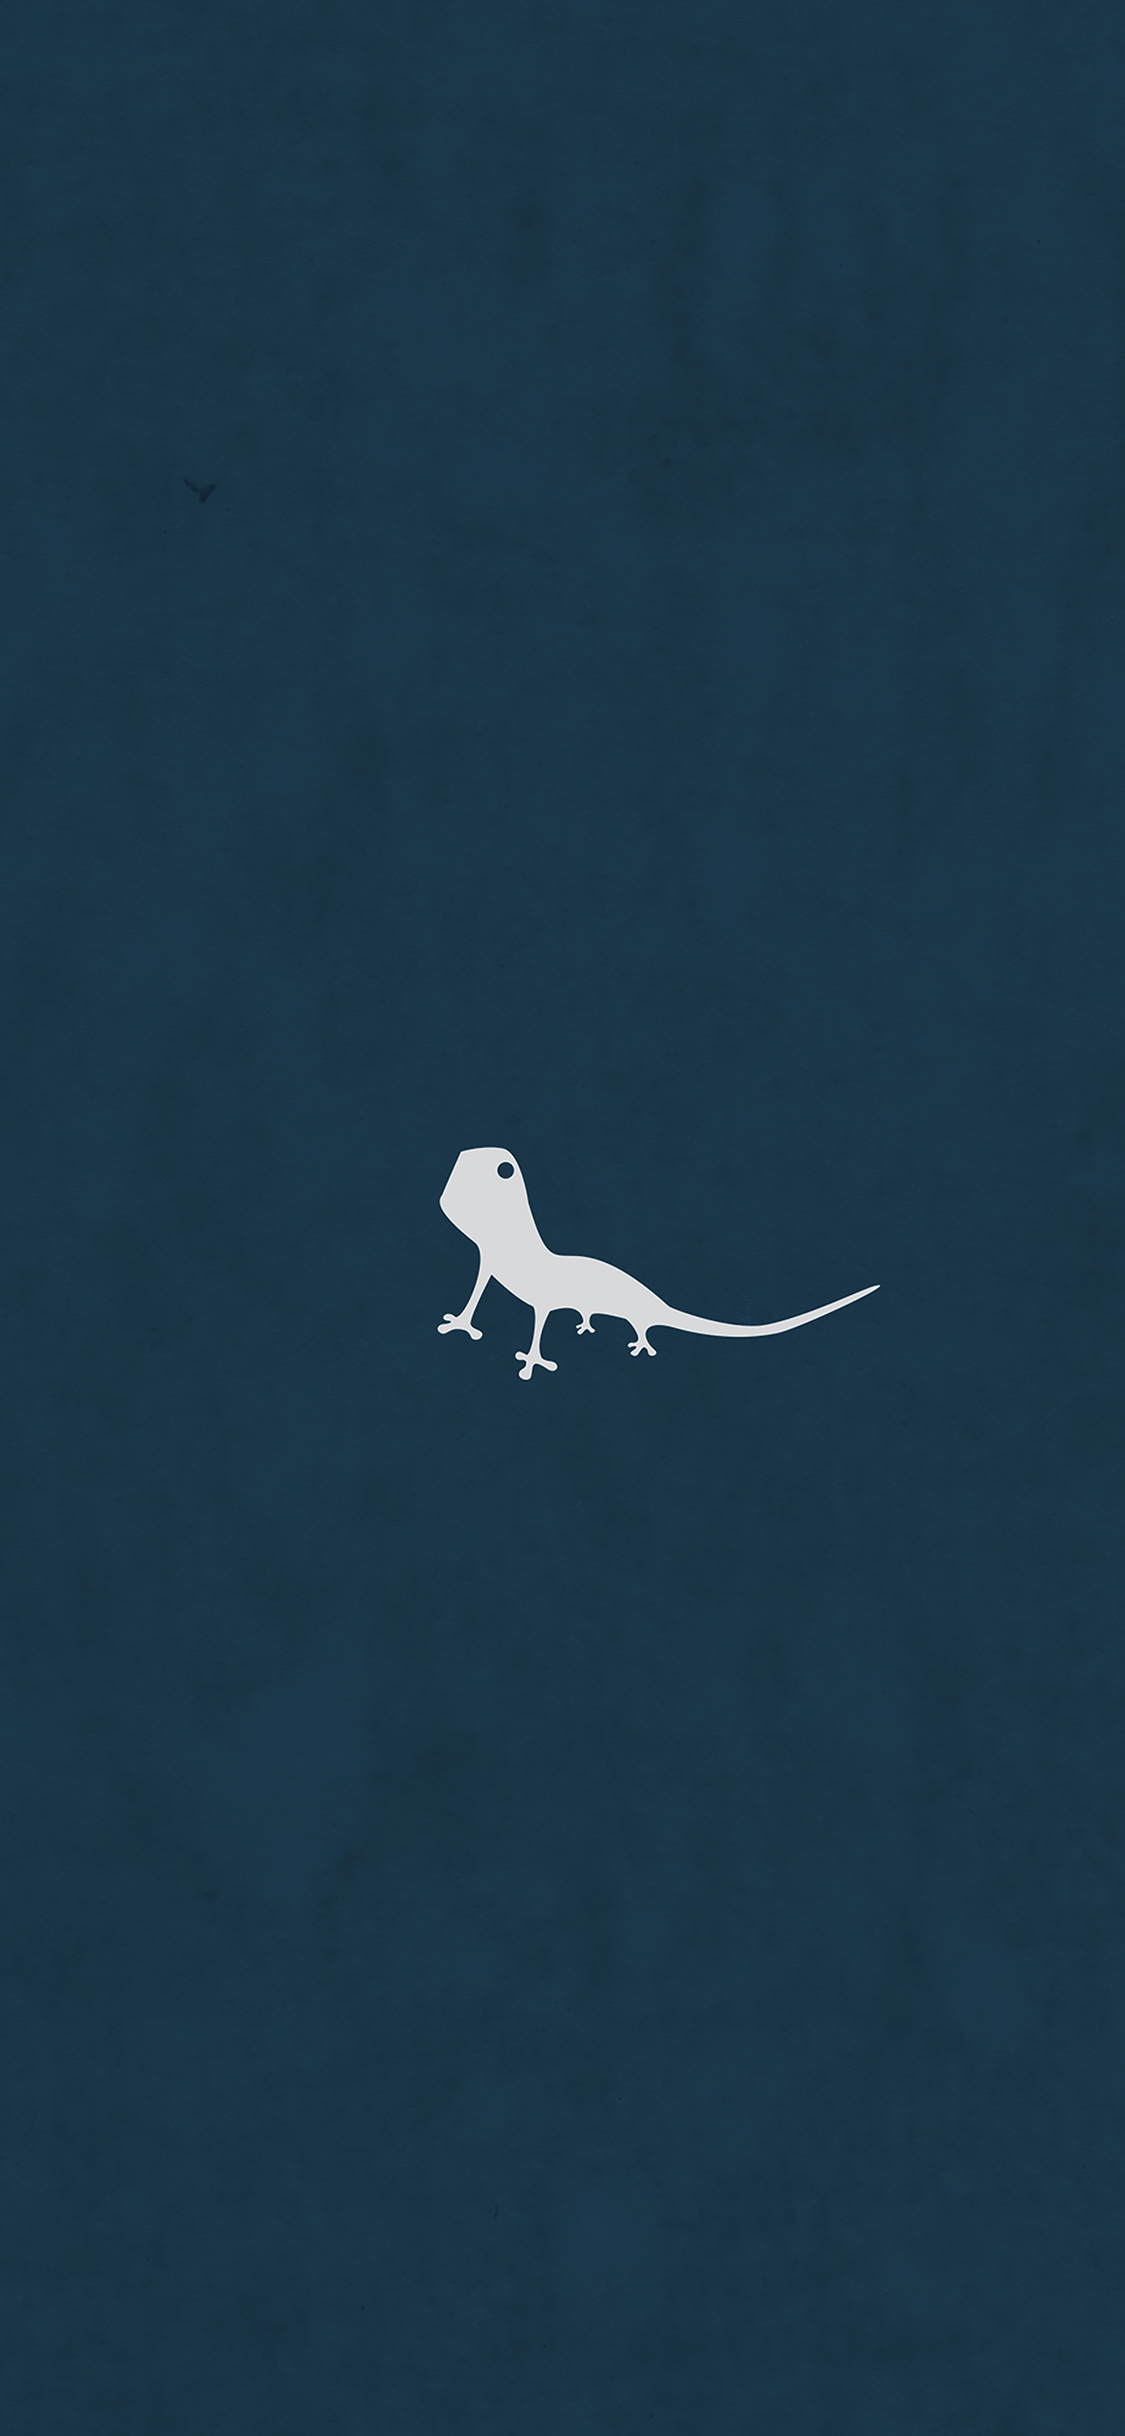 iPhoneXpapers.com-Apple-iPhone-wallpaper-ah55-lizard-blue-animal-minimal-simple-art